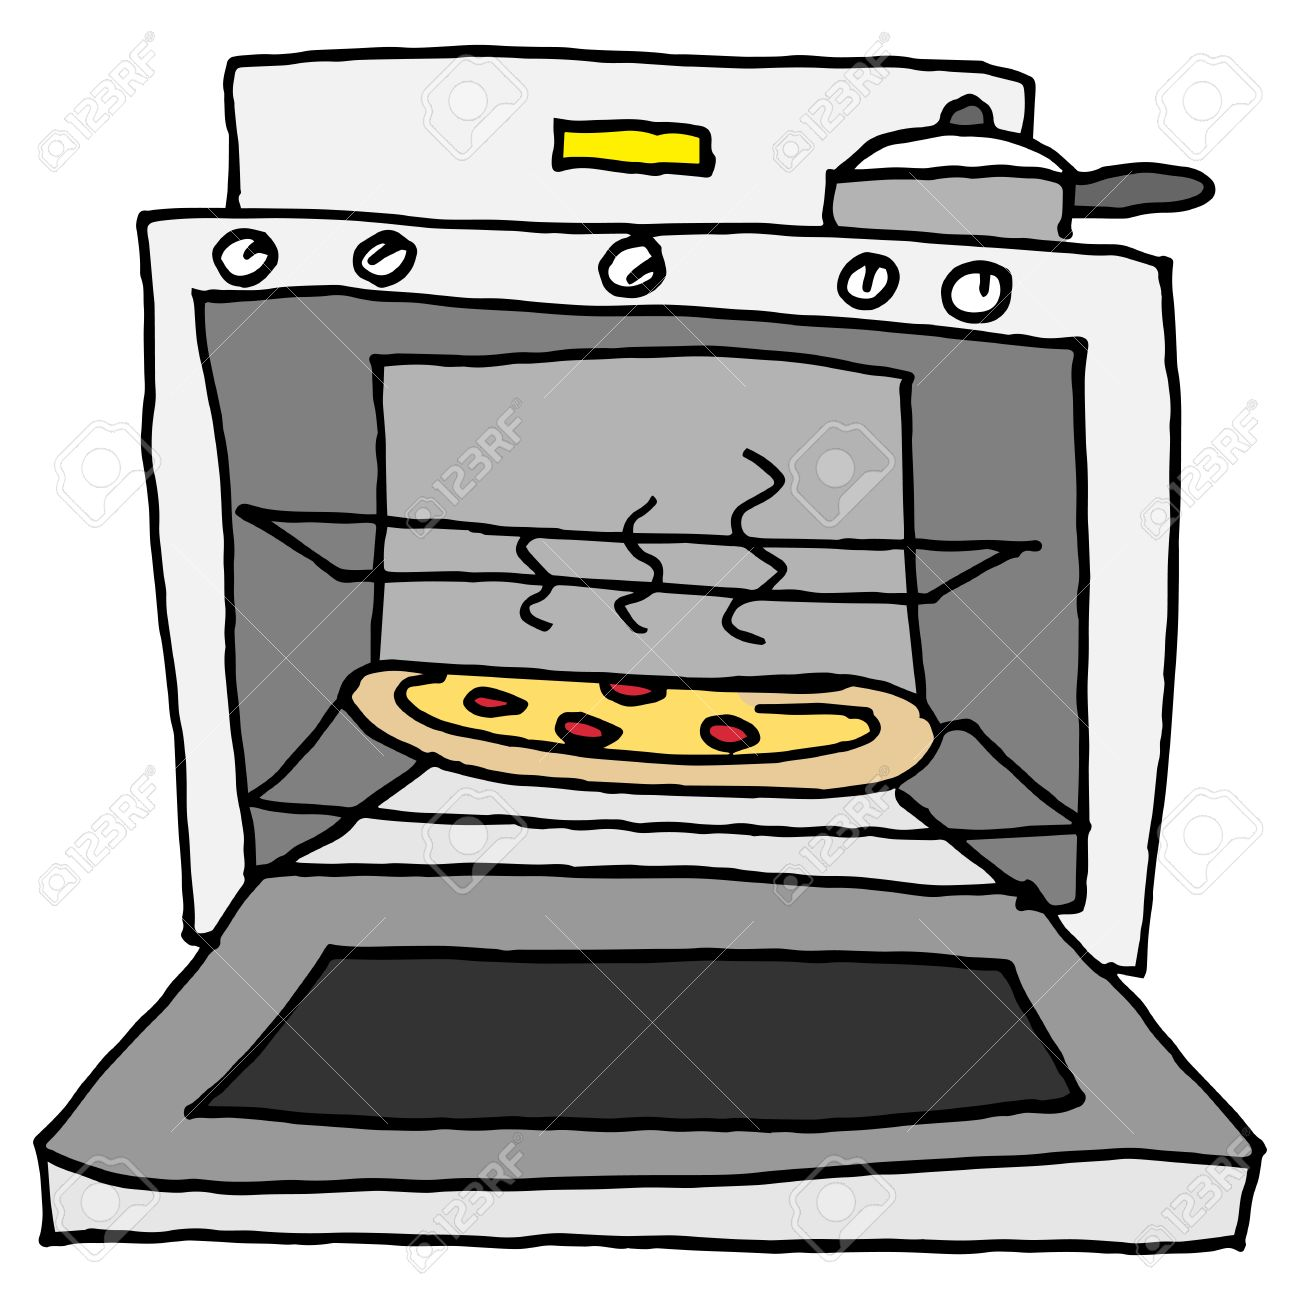 Horno clipart image black and white stock 14 cliparts for free. Download Oven clipart horno and use in ... image black and white stock